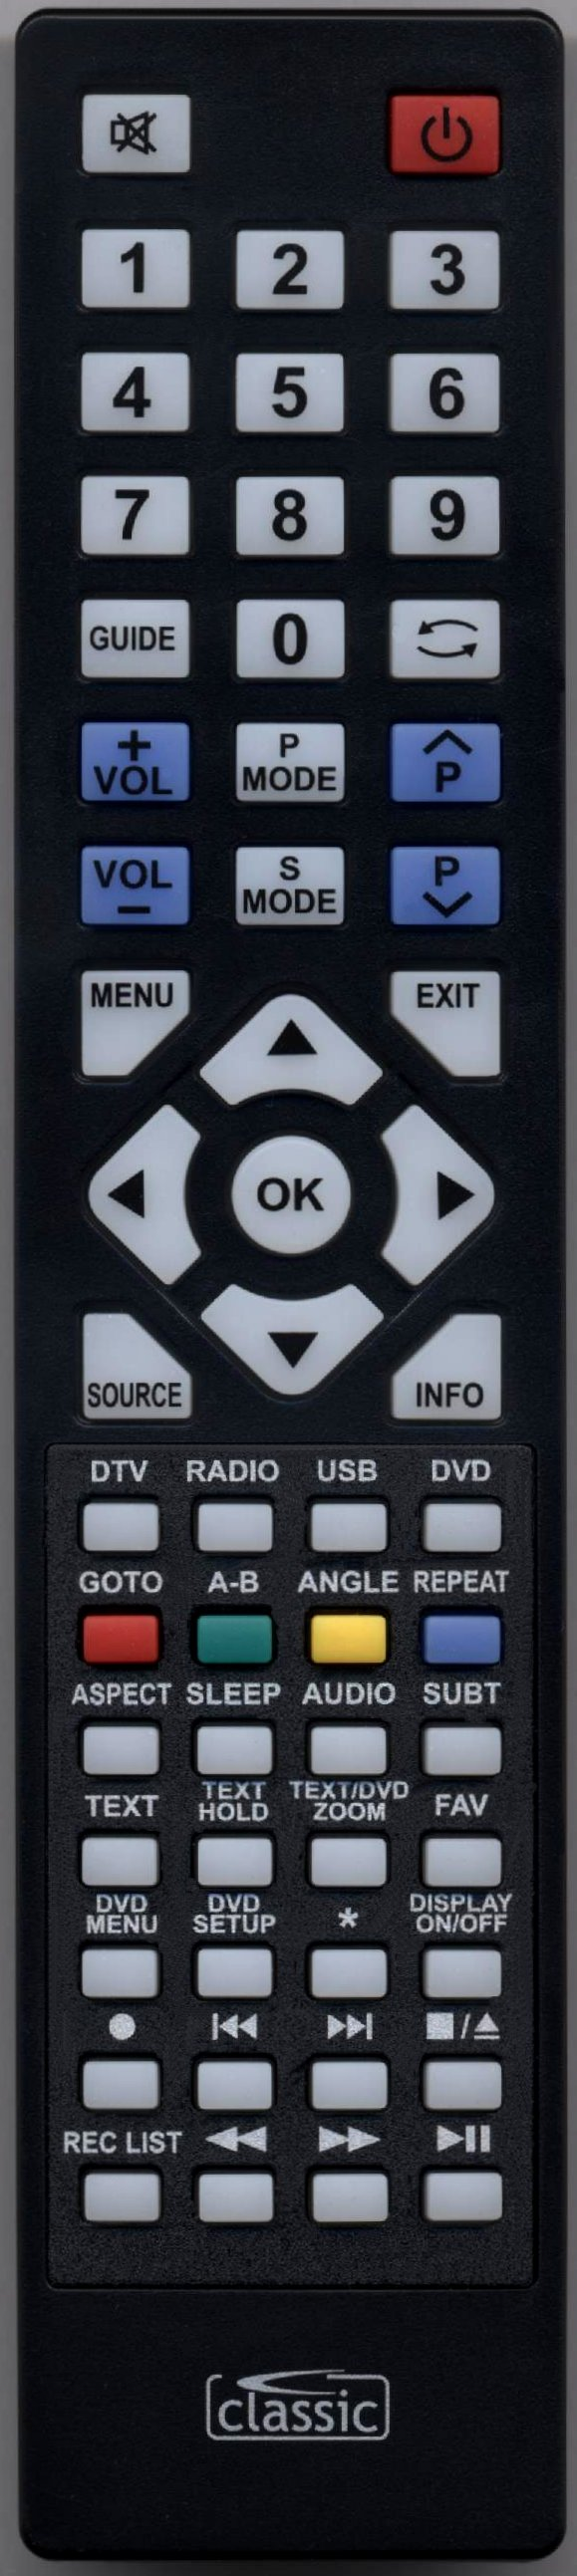 BLAUPUNKT 32/146I-GB-5B-HKUP-UK Remote Control Alternative